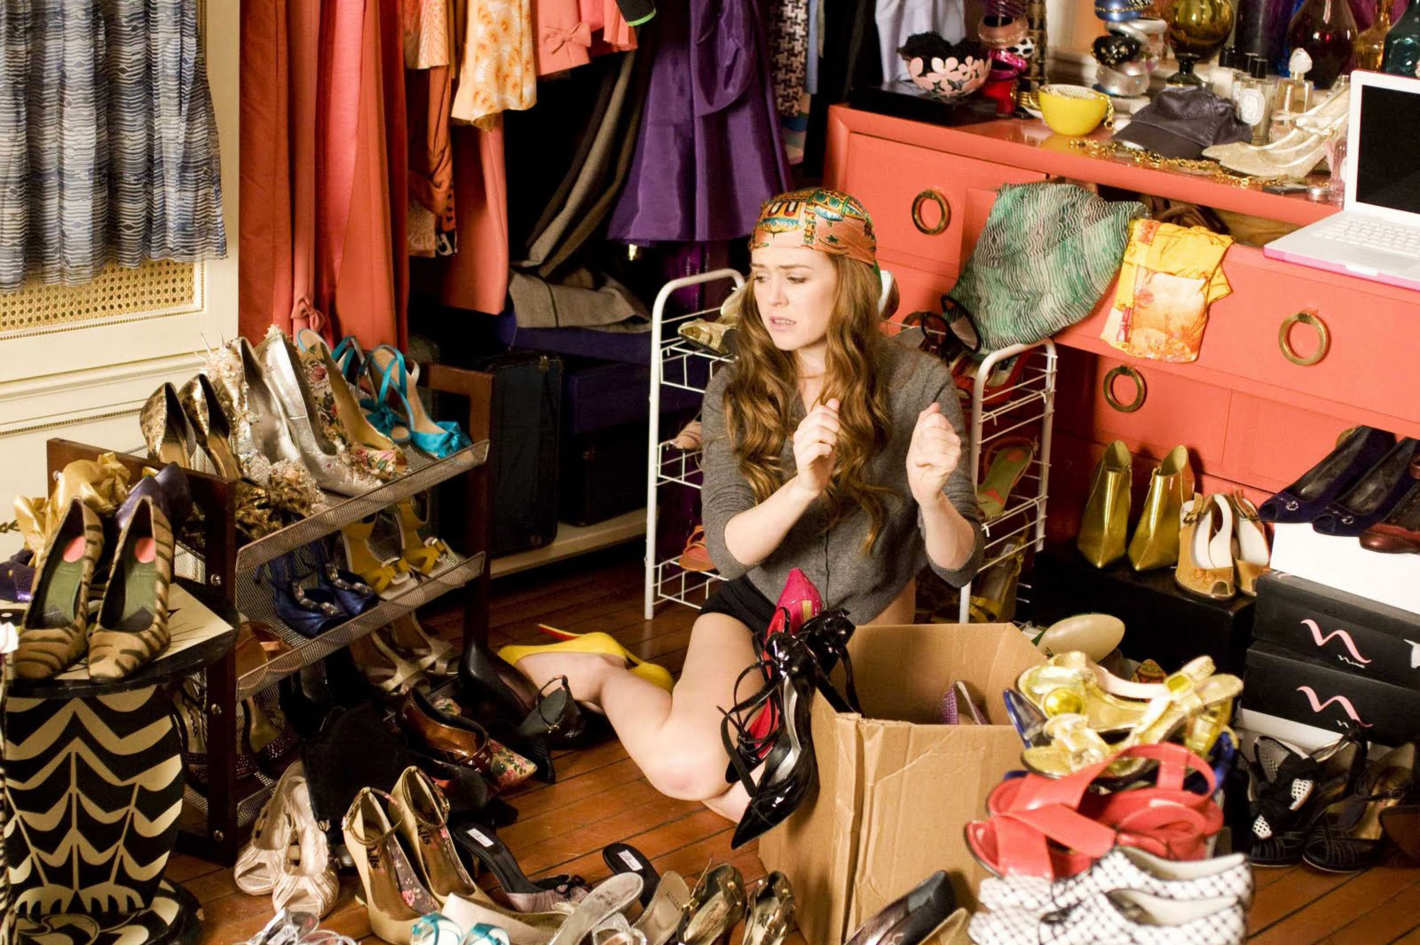 05-cleaning-out-closet.w710.h473.2x.jpg